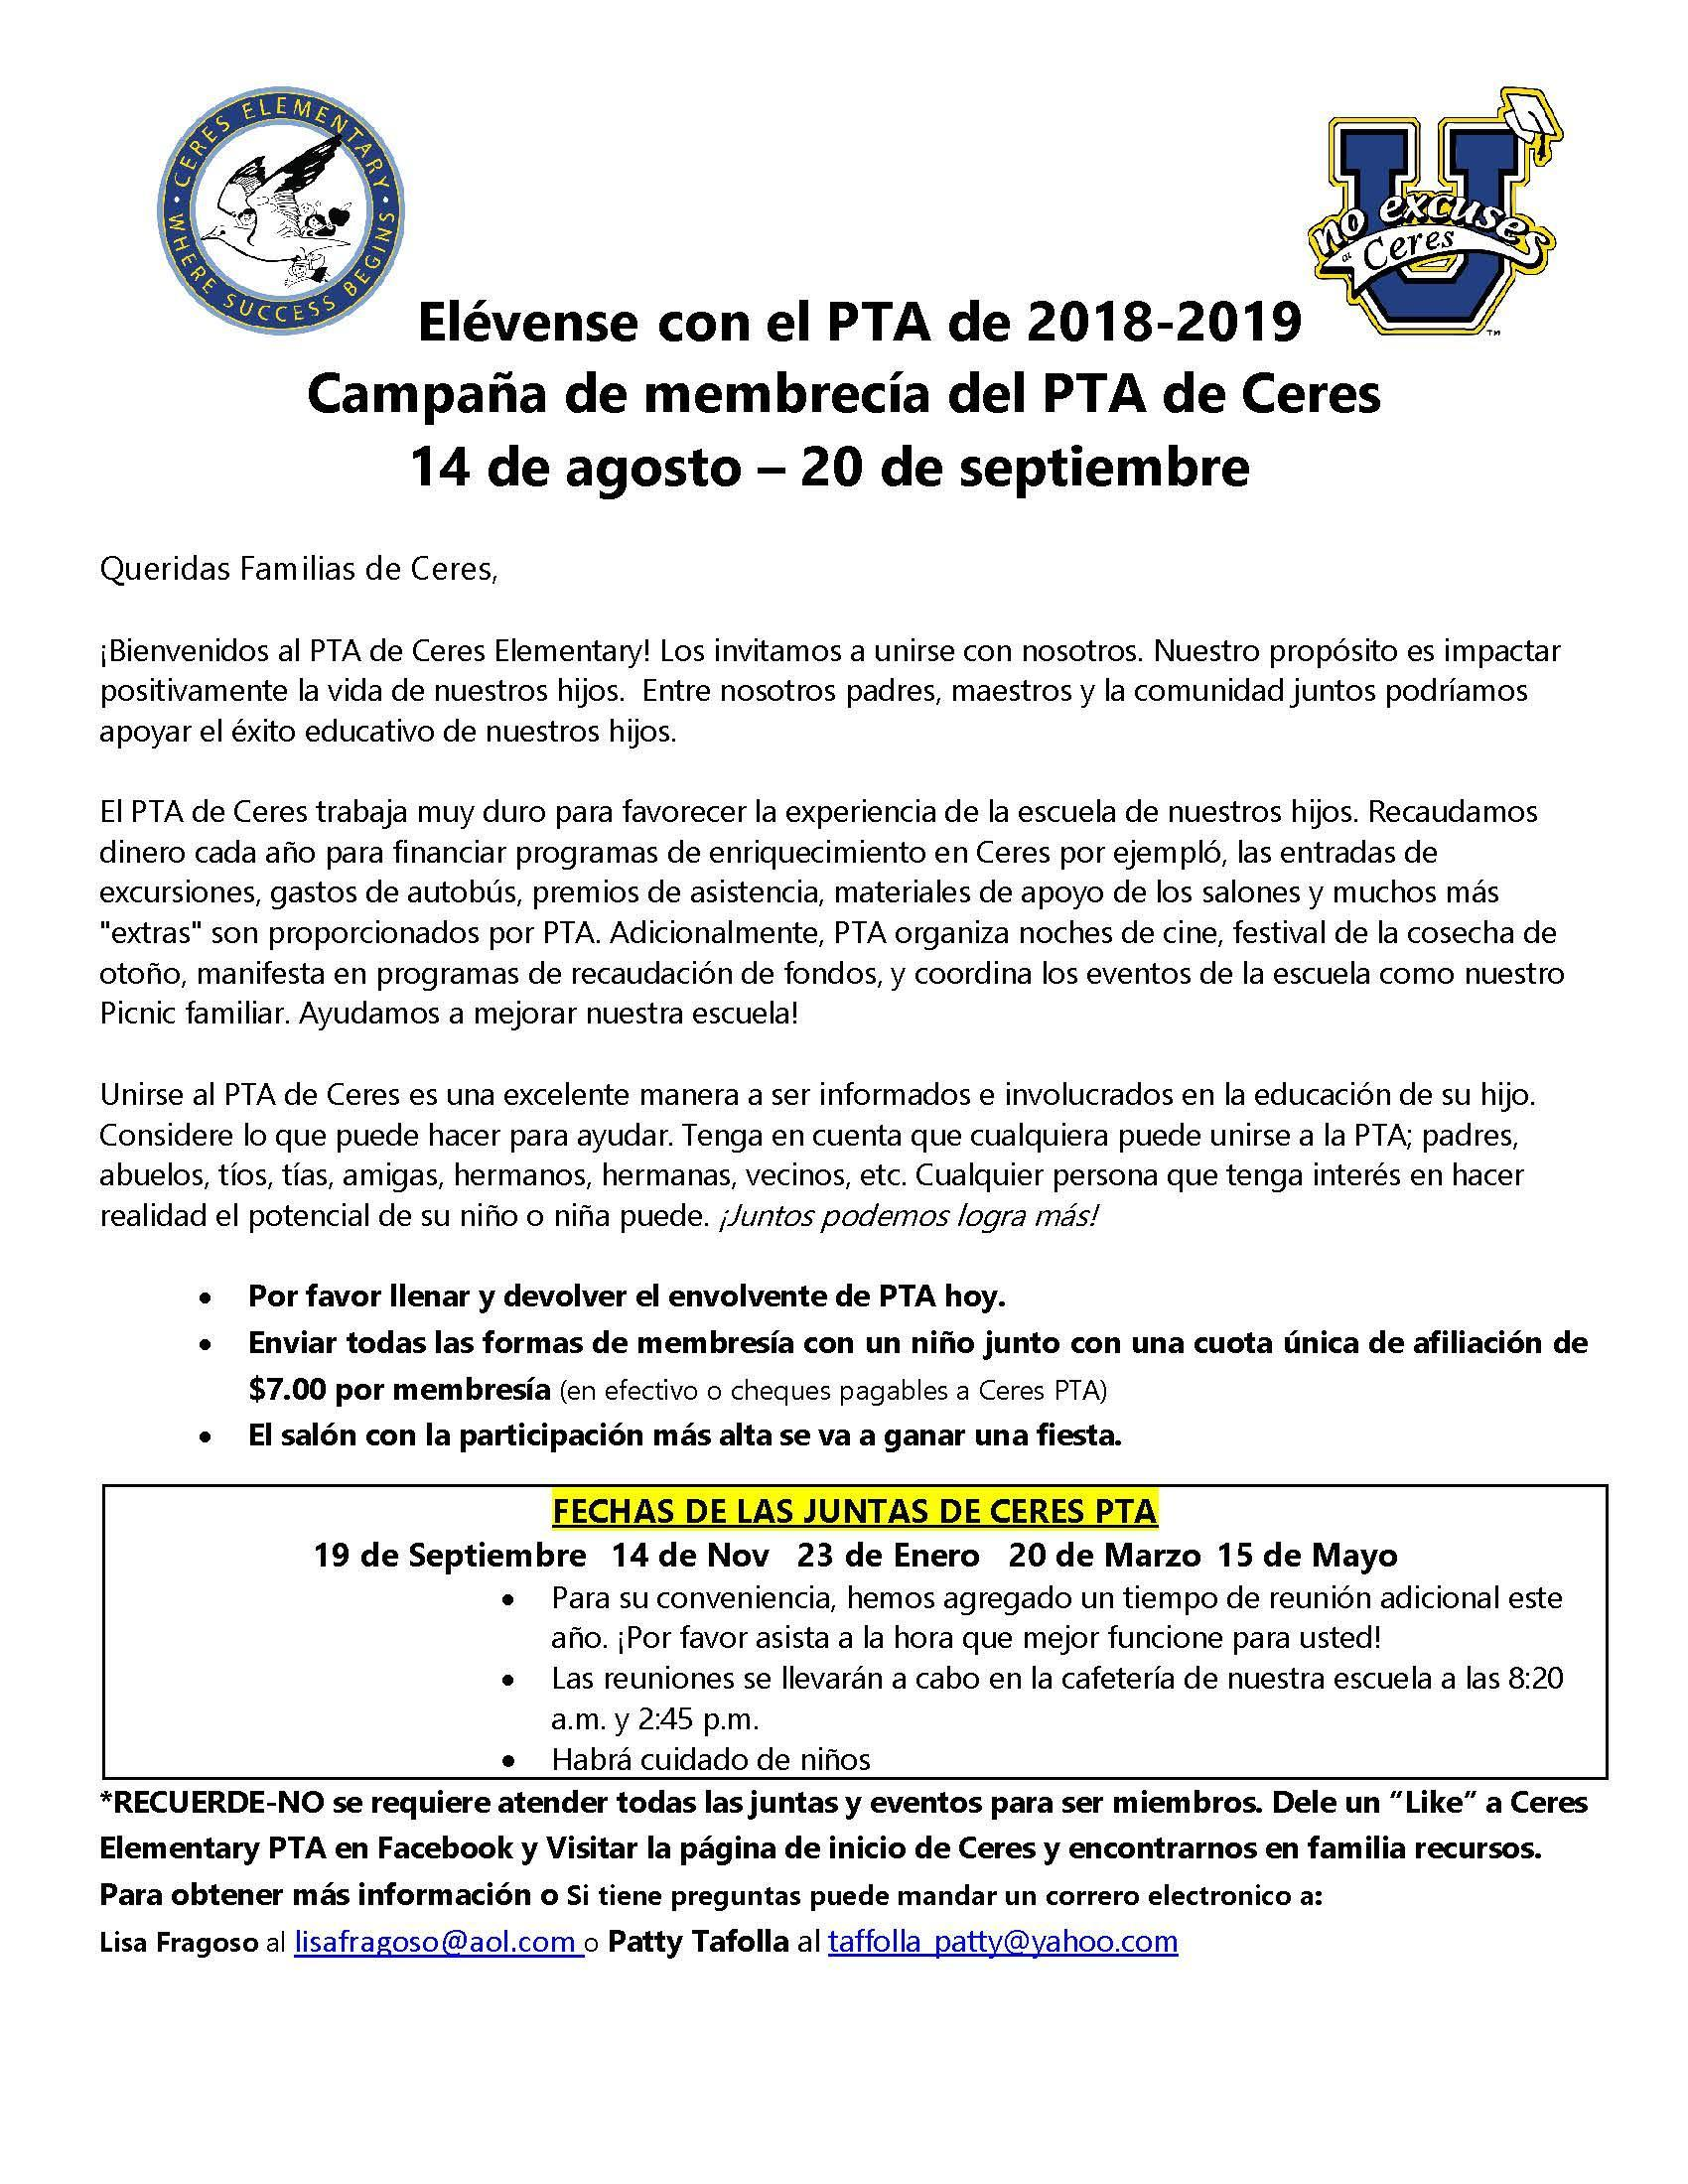 Letter for the Ceres PTA Membership Drive Spanish